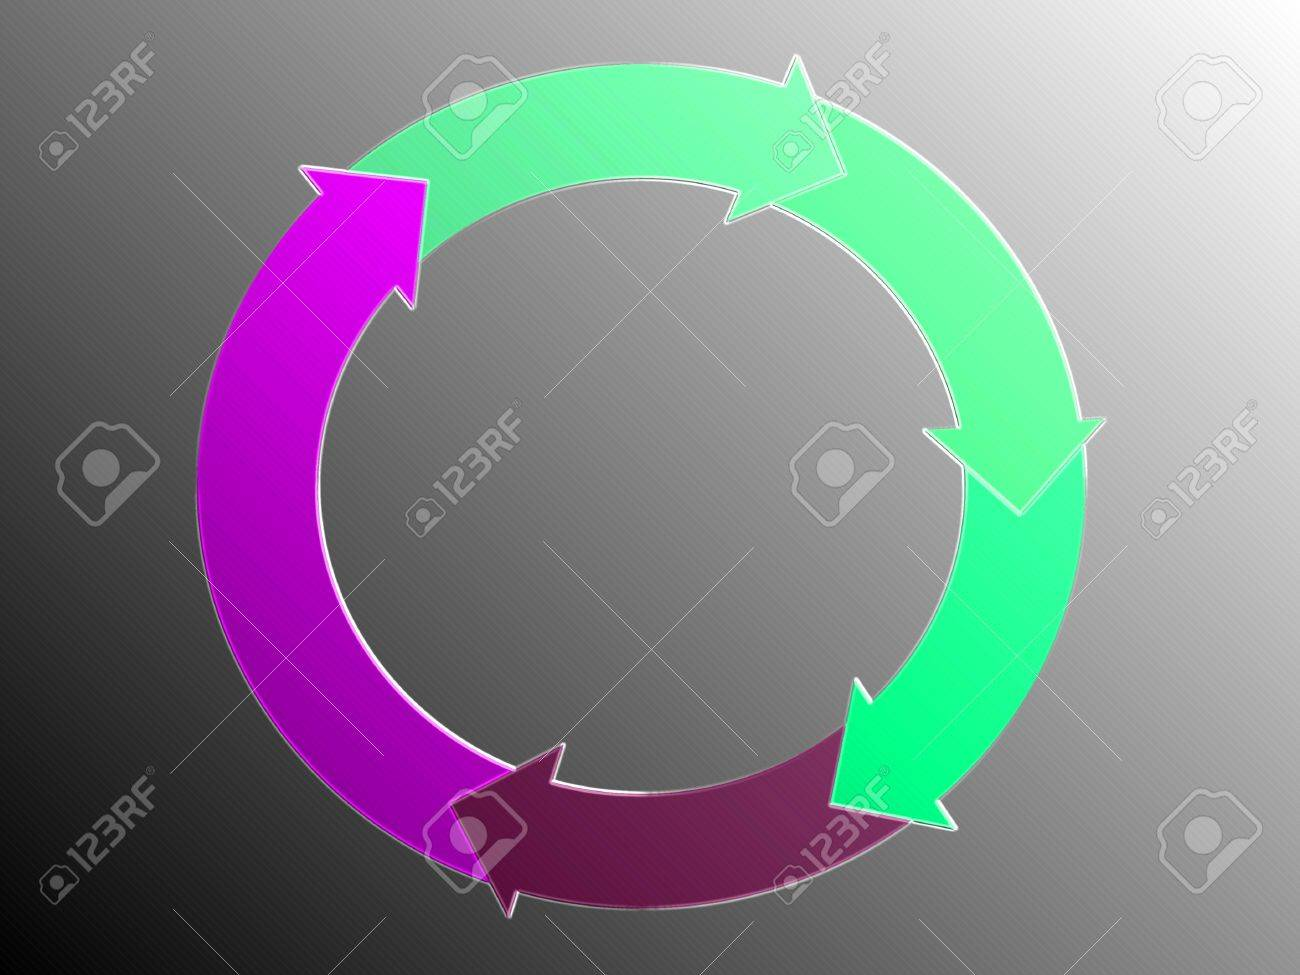 Cycle, recycle, arrows, circular, circle, graphic Stock Photo - 14559435